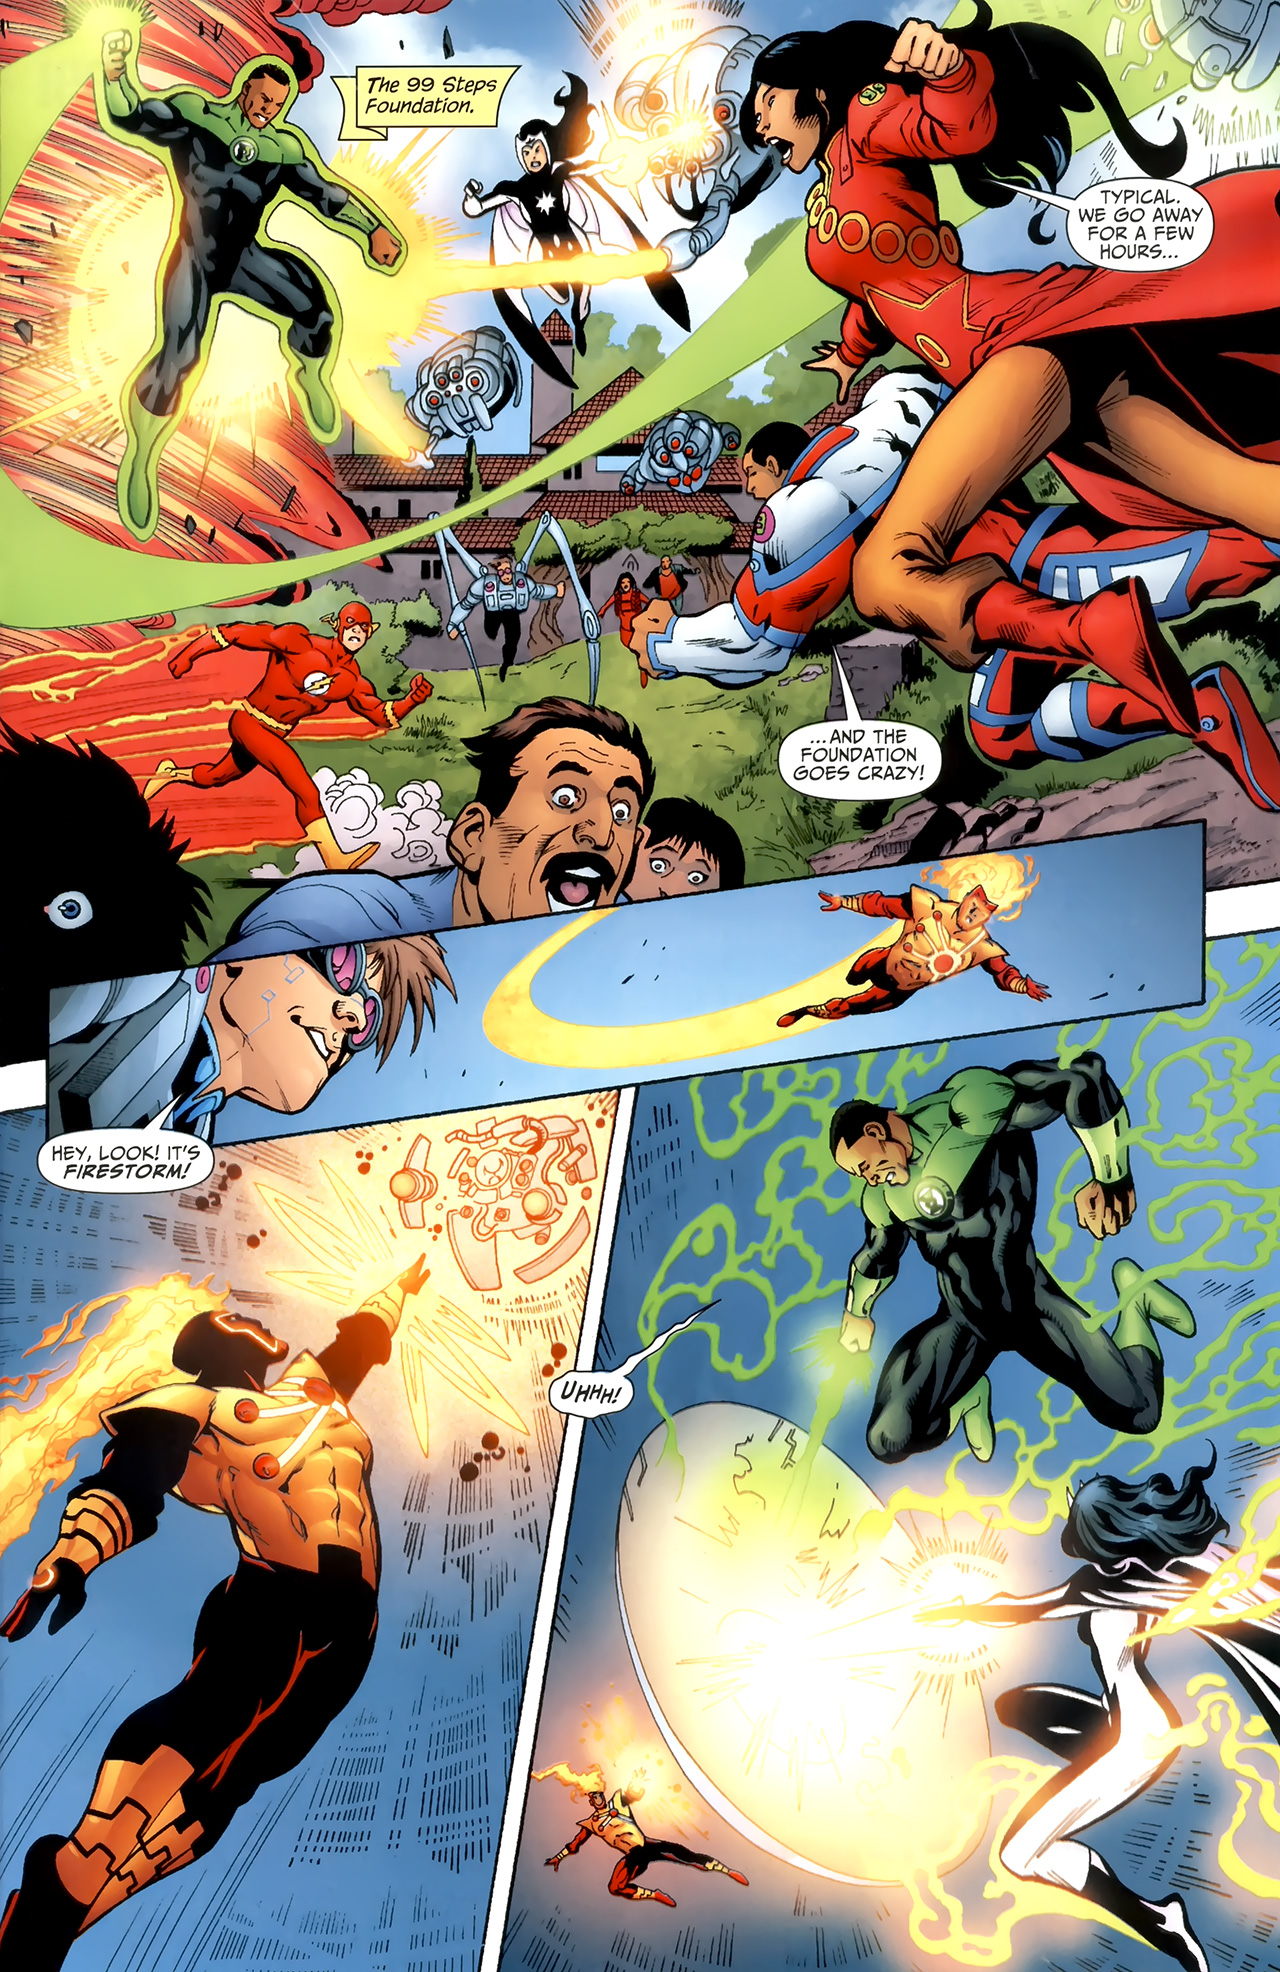 Read online Justice League of America/The 99 comic -  Issue #3 - 19